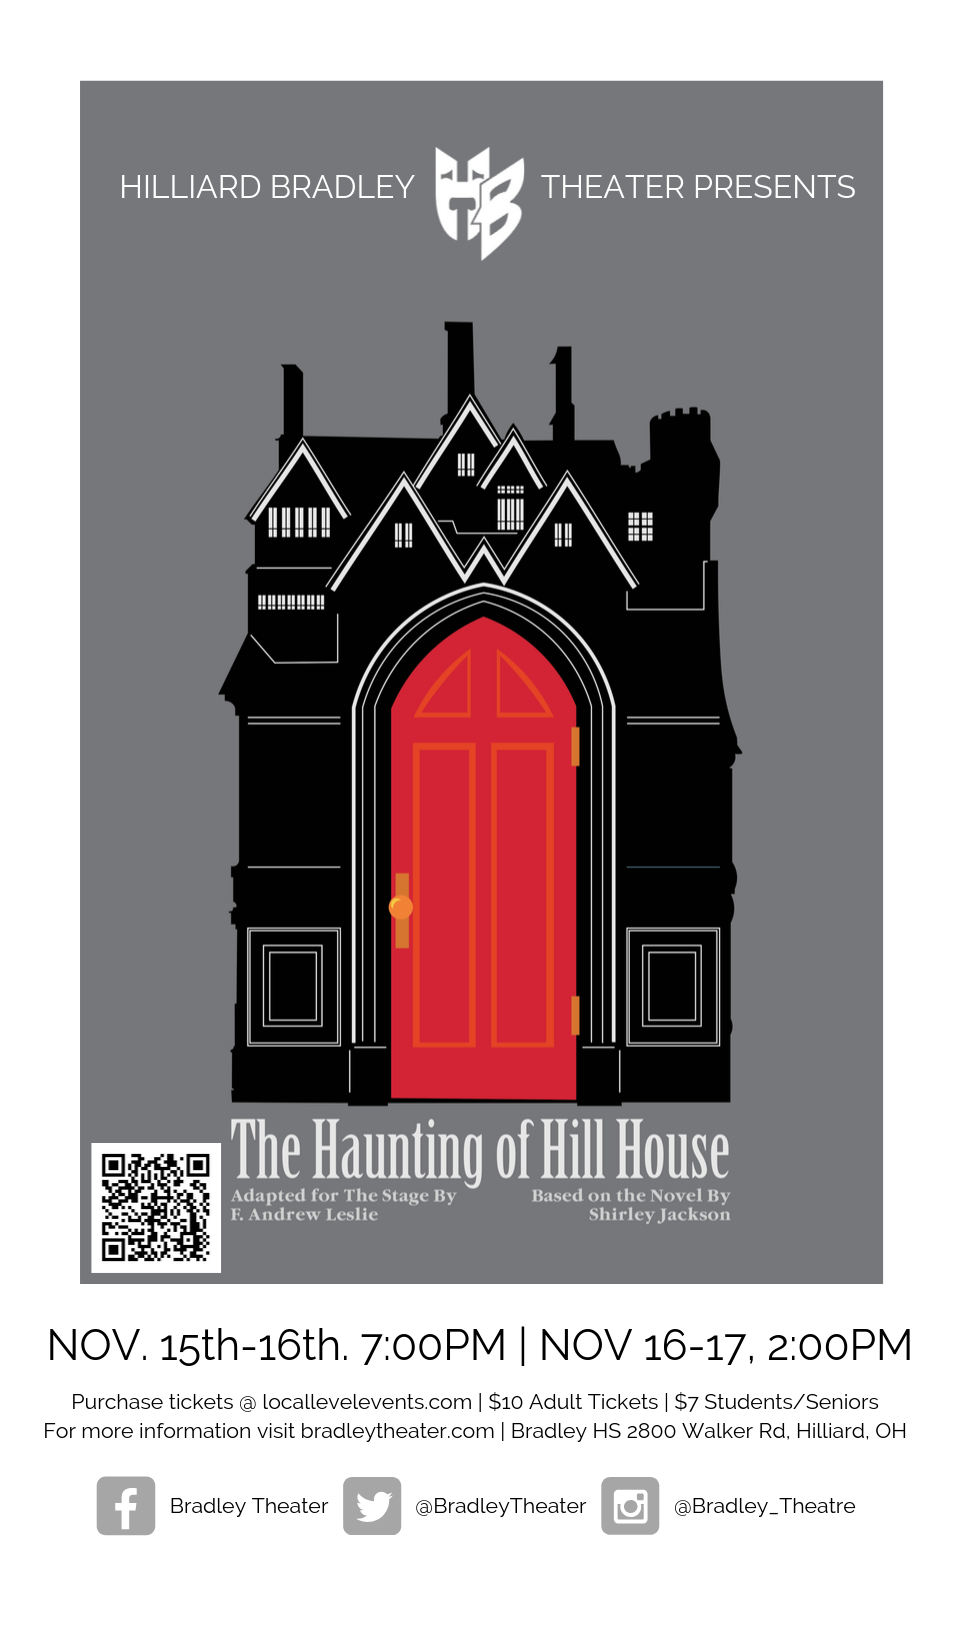 Local Level Events Hilliard Bradley Theater Presents The Haunting Of Hill House